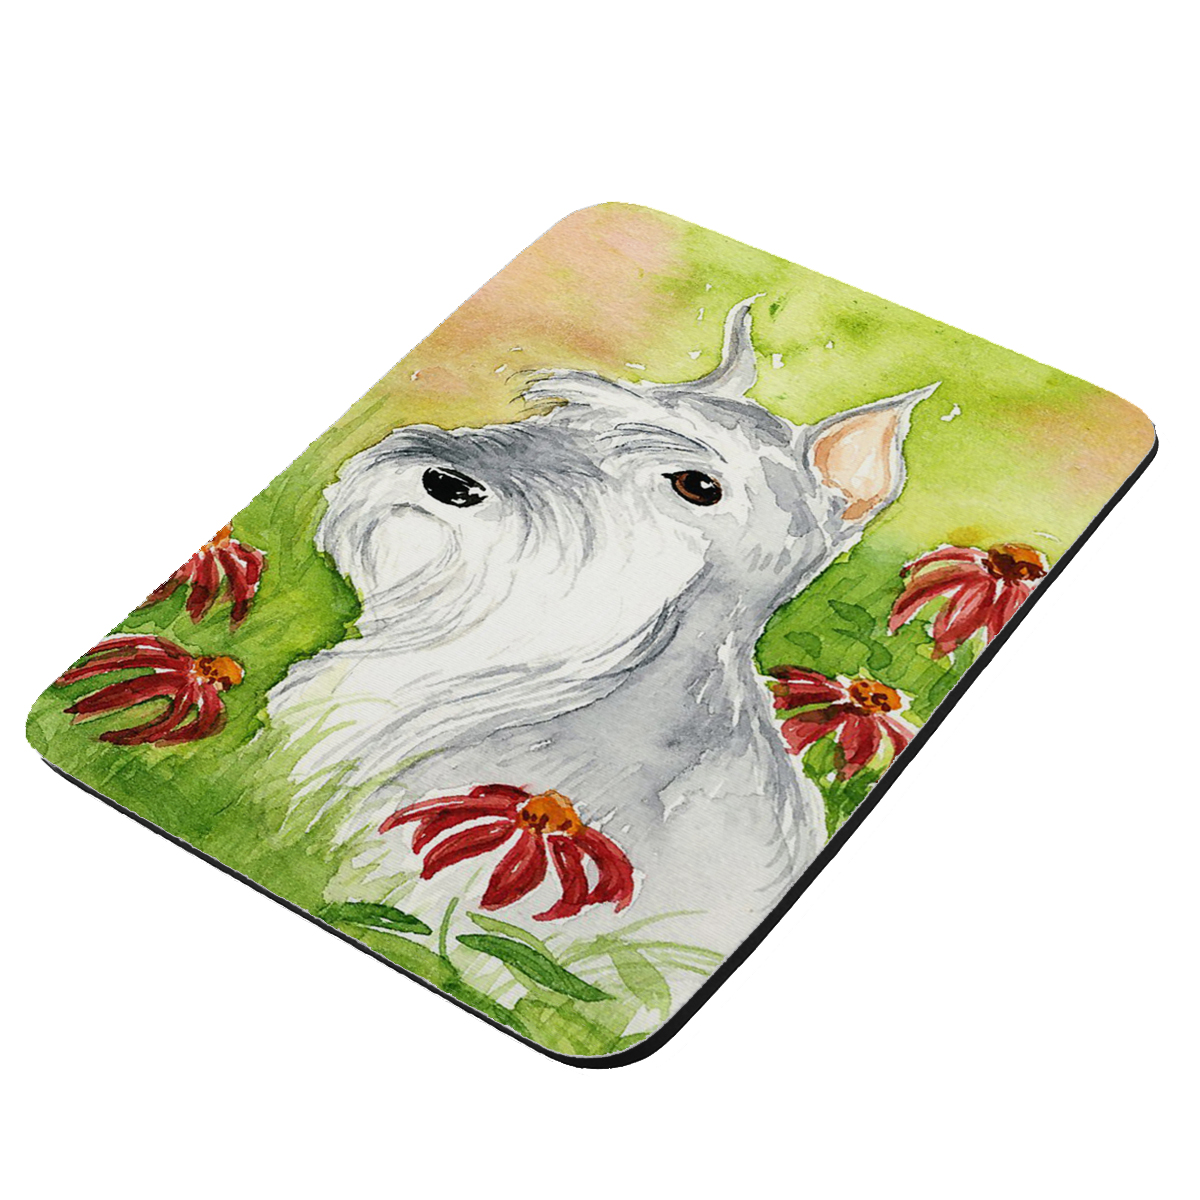 Miniature Schnauzer Art by Denise Every - KuzmarK Mousepad / Hot Pad / Trivet